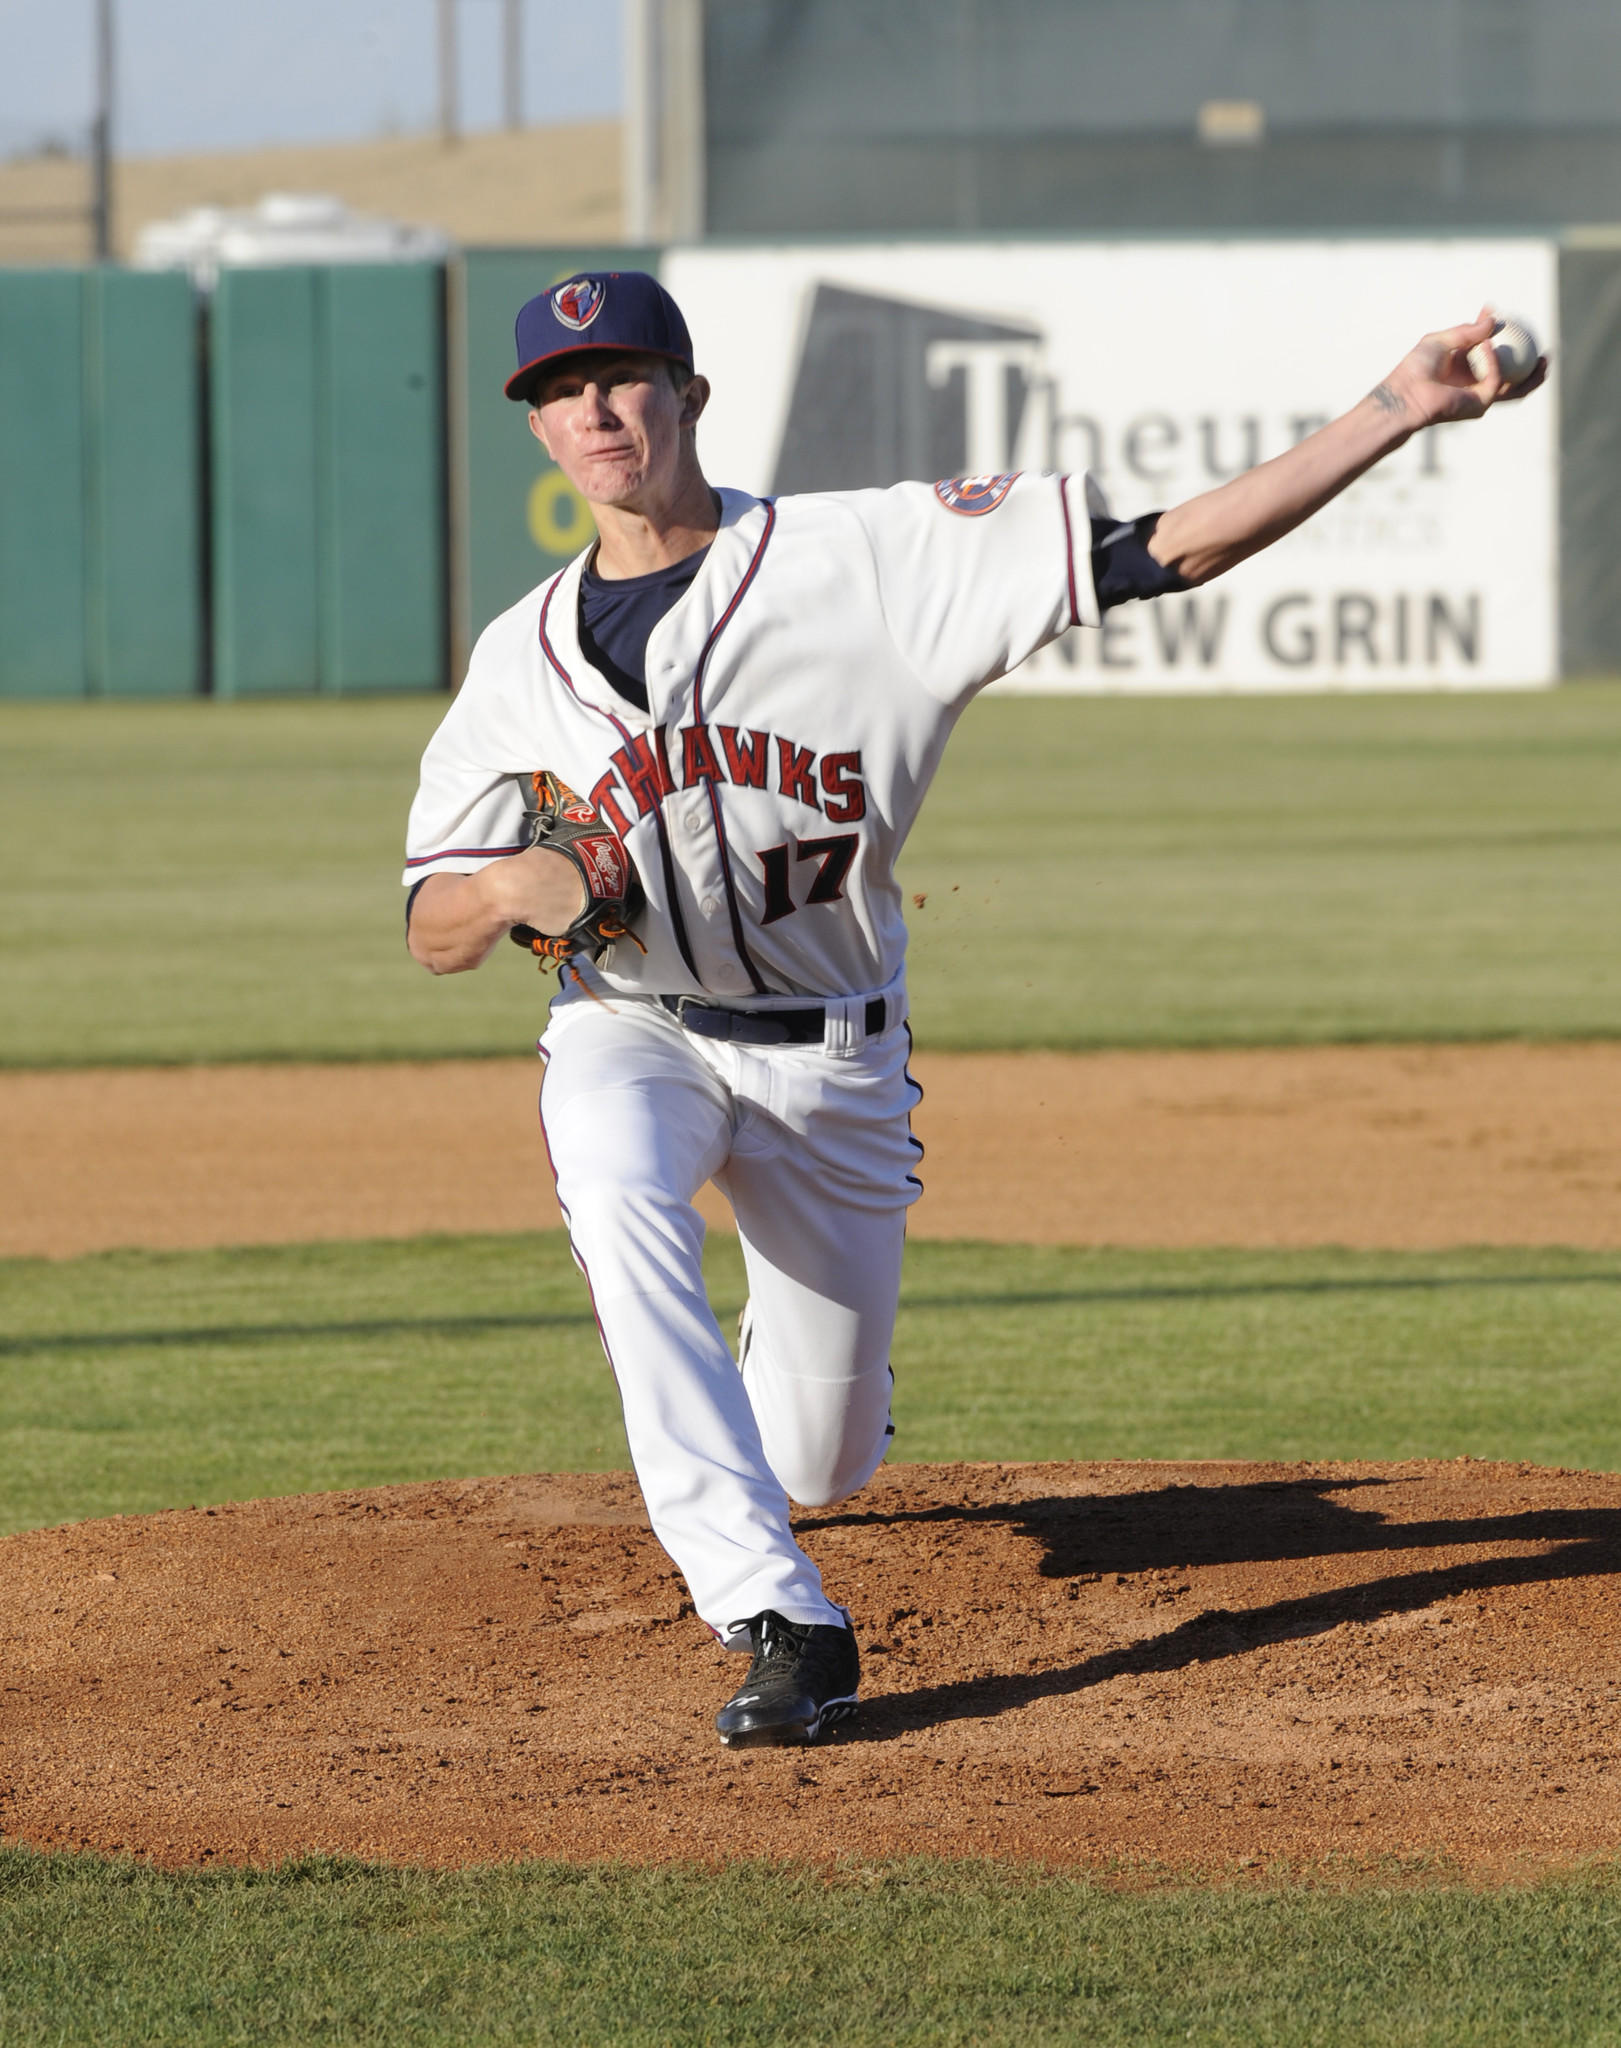 Josh Hader, a graduate of Old Mill High School, is working in the Houston Astro's farm system since being traded by the Orioles last year. Photo courtesy Lancaster JetHawks